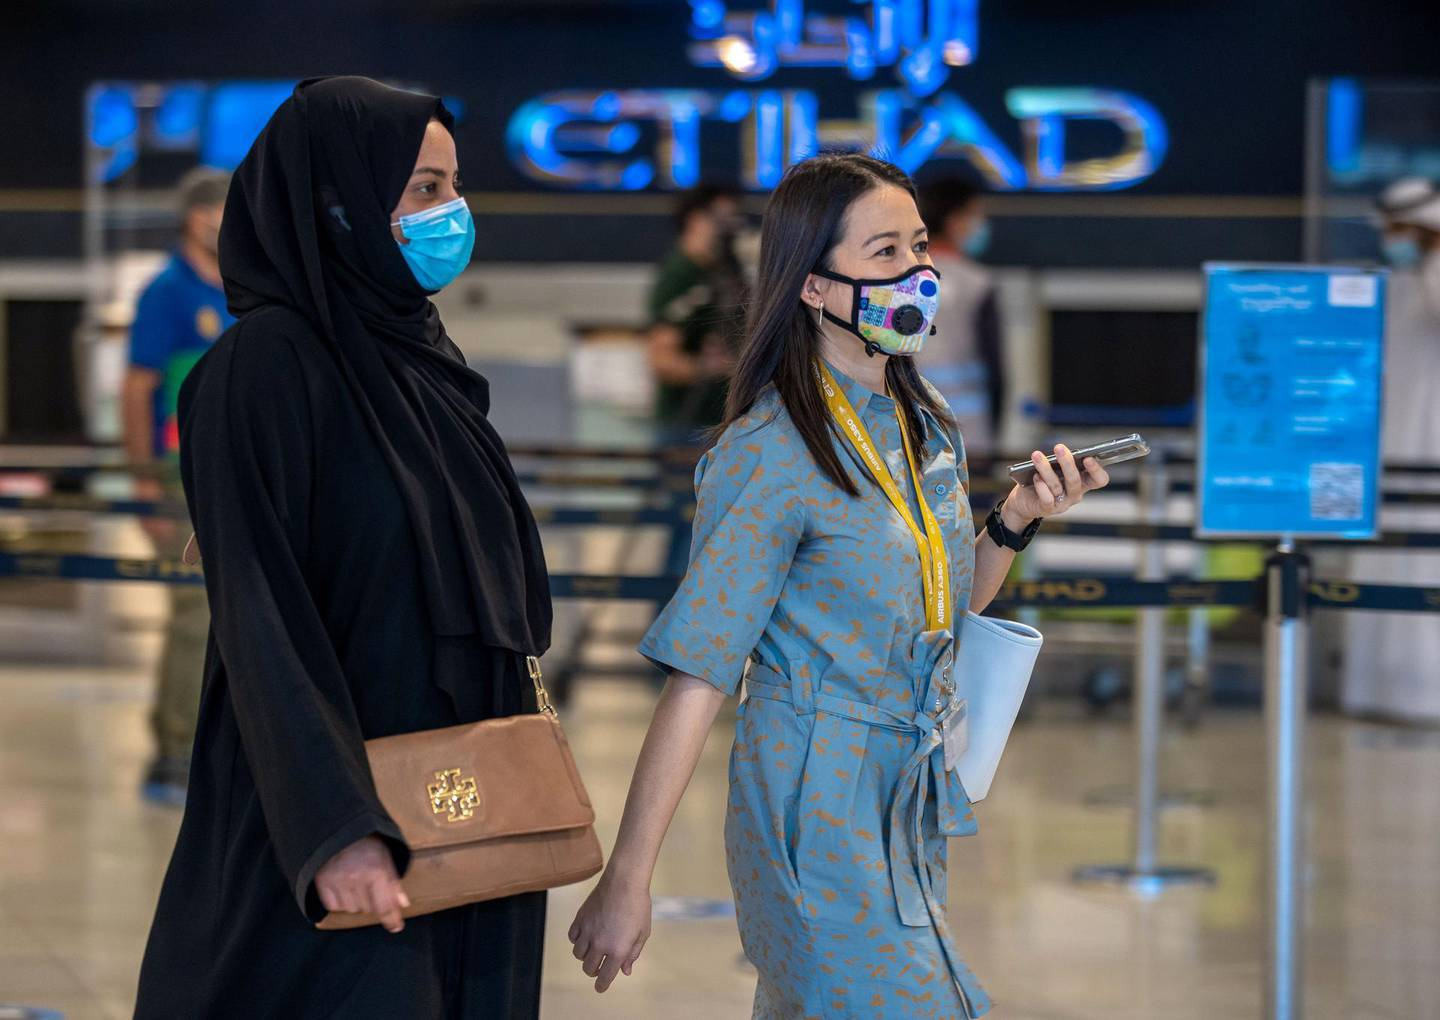 Abu Dhabi, United Arab Emirates, July 8, 2020.   Abu Dhabi International Airport Media Tour by Etihad.  The Etihad Check-In counter area.Victor Besa  / The NationalSection:  NA Reporter: